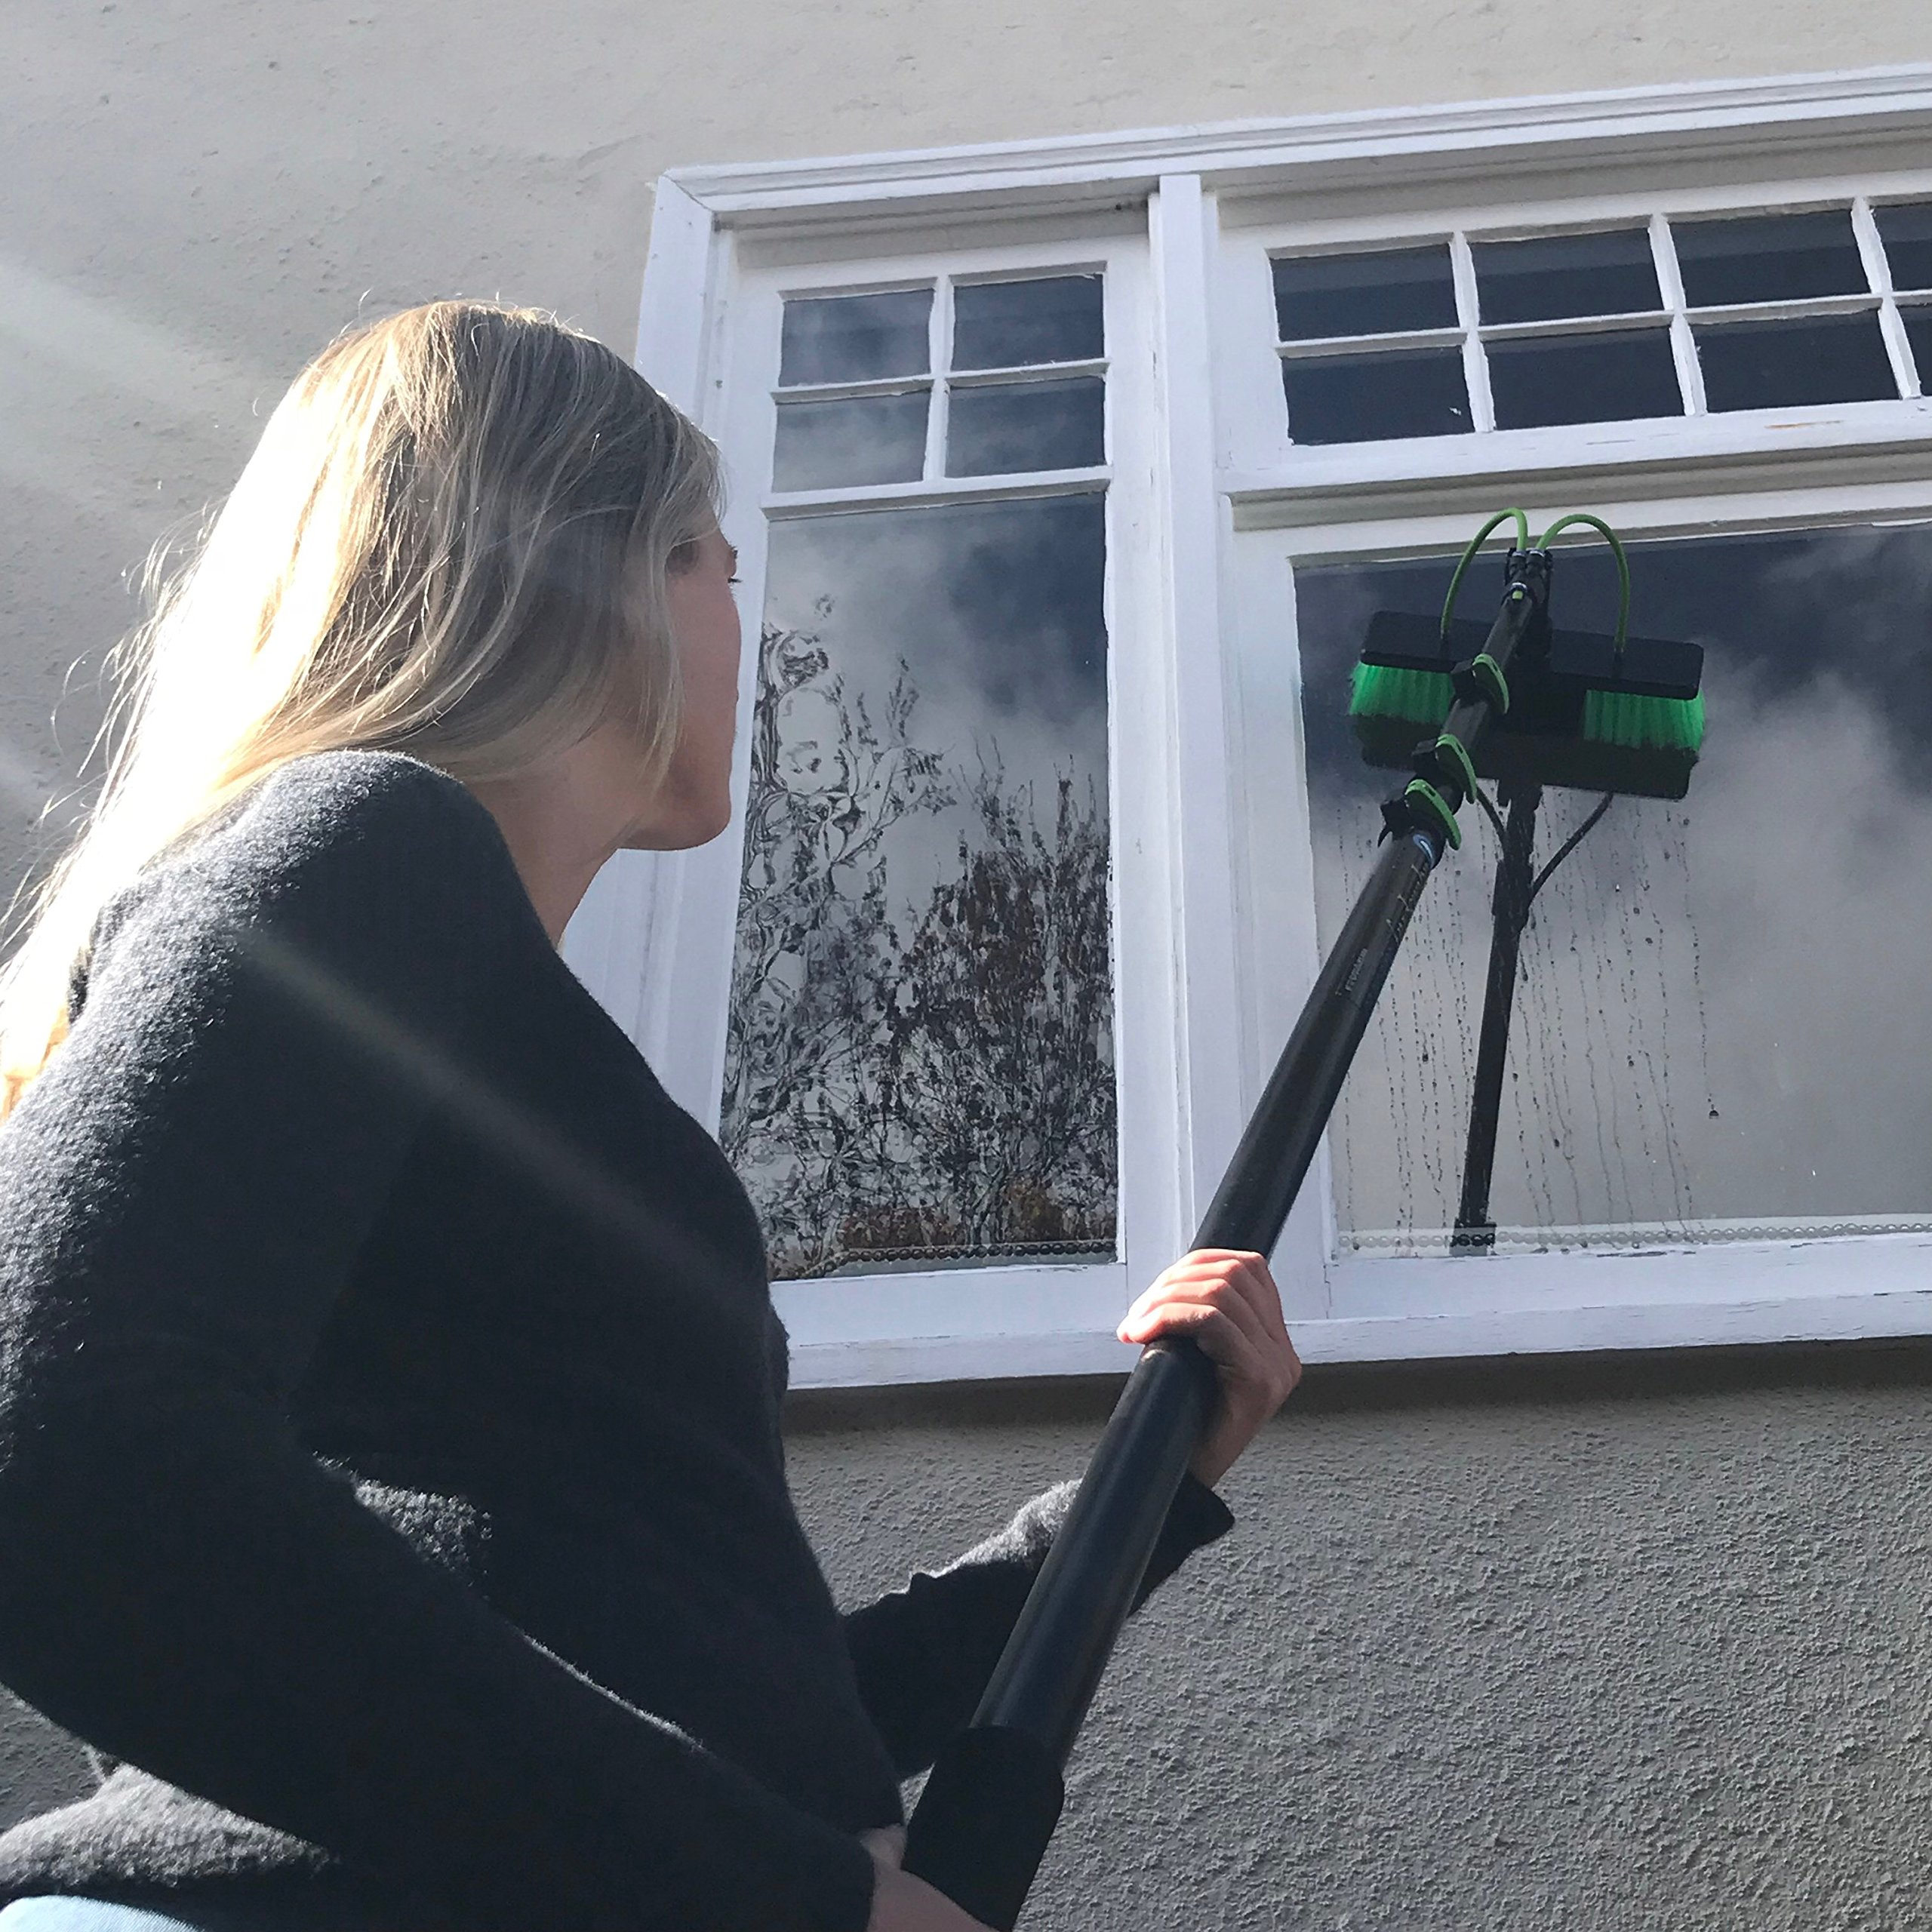 30 ft Water Fed Pole, Window & Solar Panel Cleaning Tool with Brush & Squeegee AquaSpray by EquipMaxx by EquipMaxx AquaSpray (Image #4)